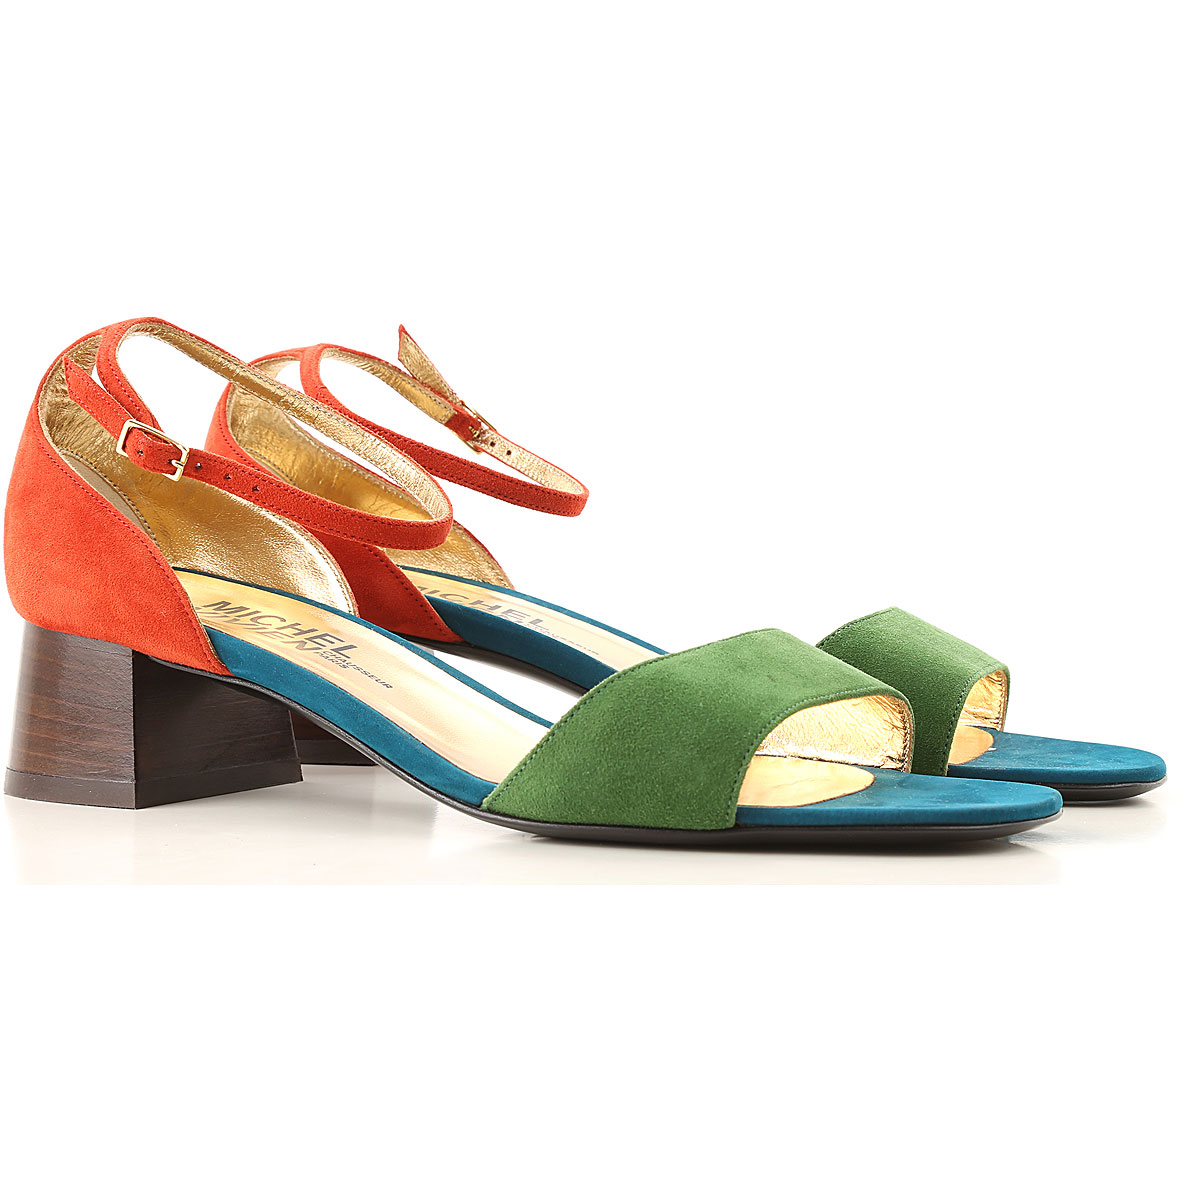 Michel Vivien Sandals for Women On Sale in Outlet, Green, Suede leather, 2019, 10 8.5